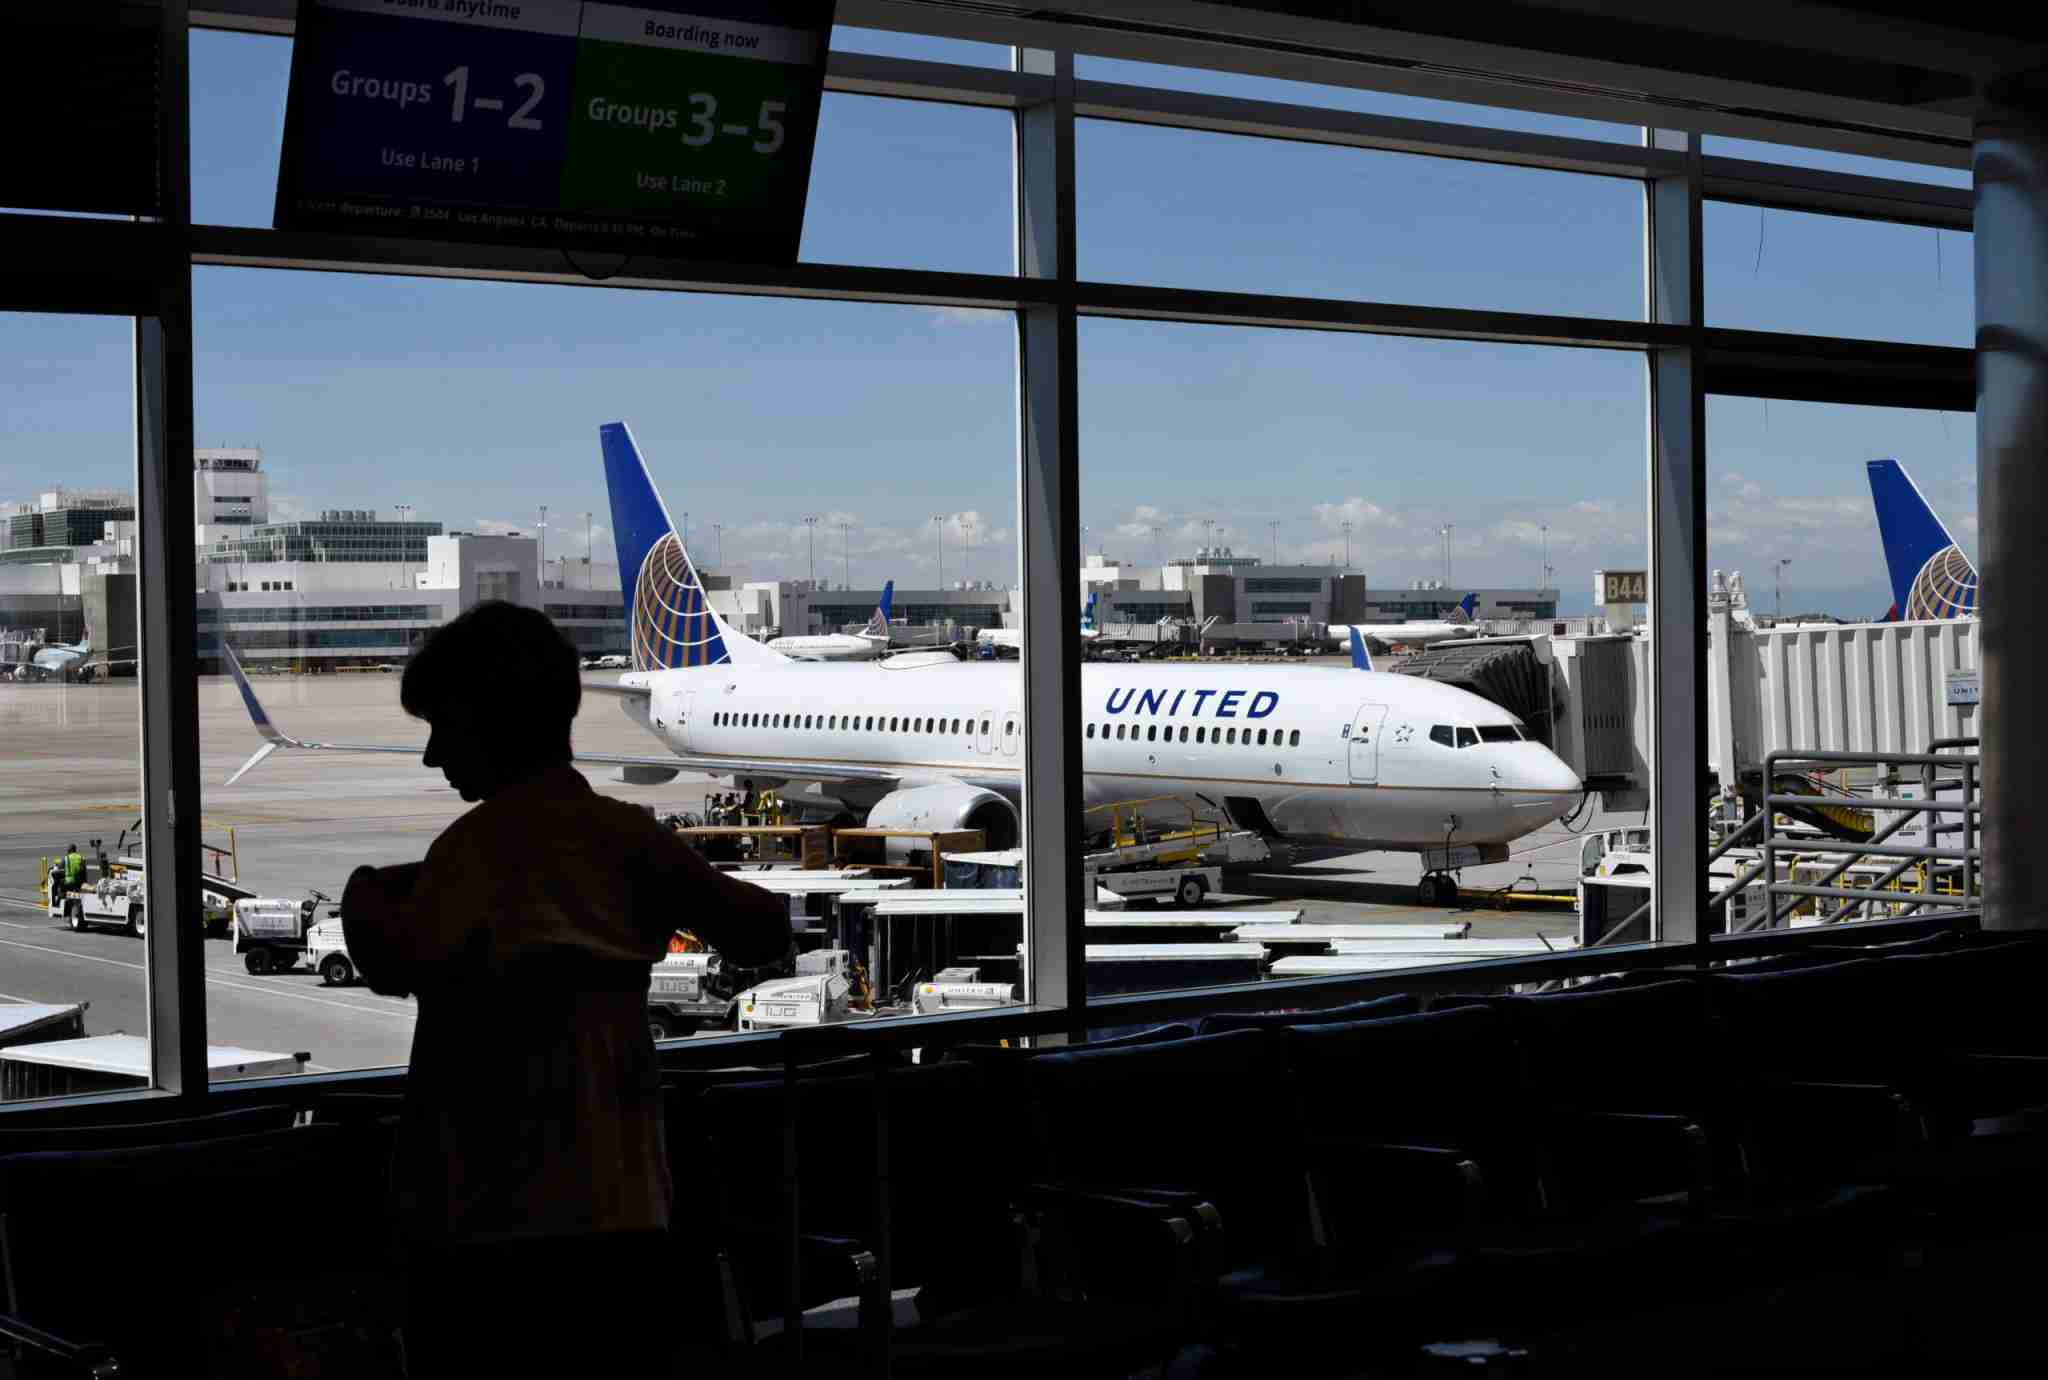 DENVER, COLORADO - JUNE 12, 2019: A passenger waiting for her flight to board stands in the airport terminal as a United Airlines plane is loaded at a gate at Denver International Airport in Denver, Colorado. (Photo by Robert Alexander/Getty Images)